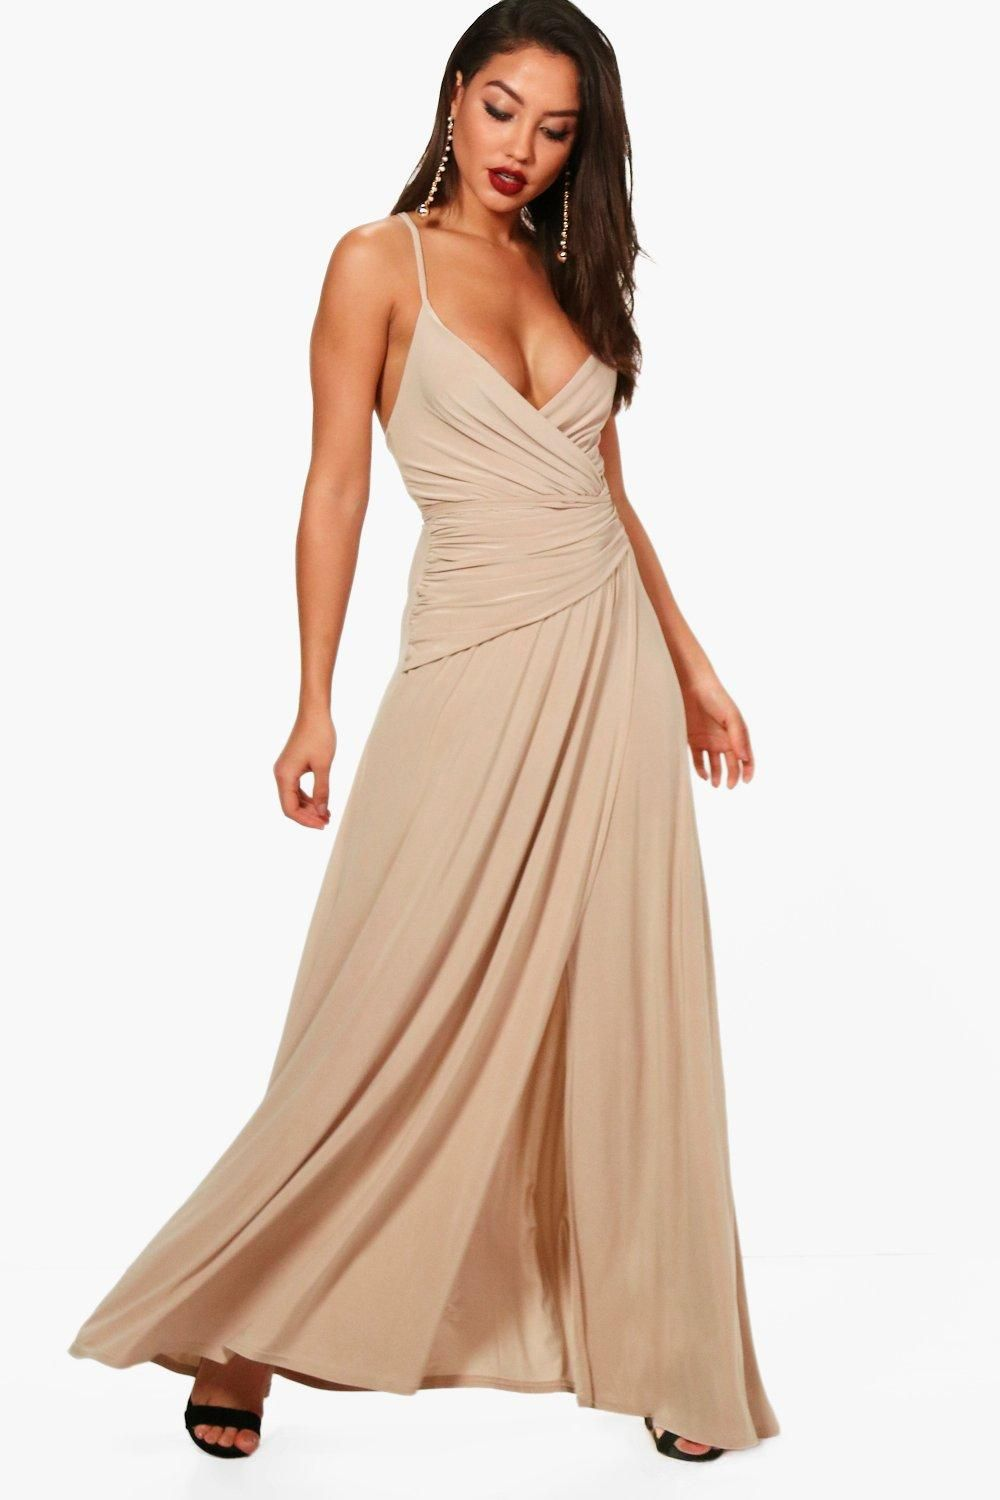 Slinky Wrap Ruched Strappy Maxi Bridesmaid Dress Boohoo Cheap Maxi Dresses Bridesmaid Dresses Bridesmaids Dress Inspiration [ 1500 x 1000 Pixel ]